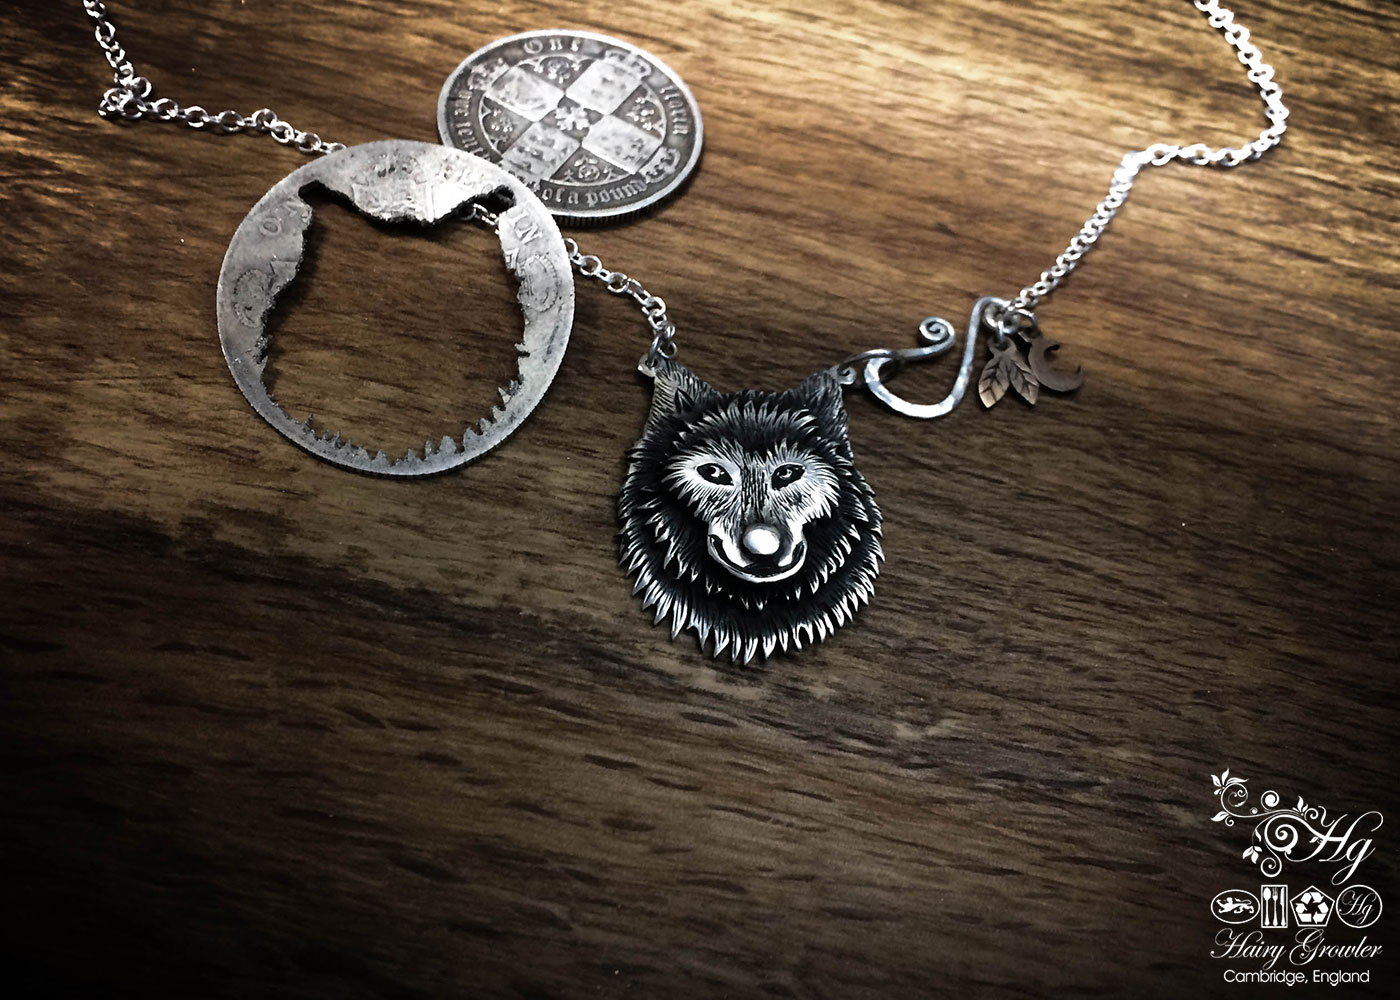 Handcrafted and recycled sterling silver lone wolf necklace